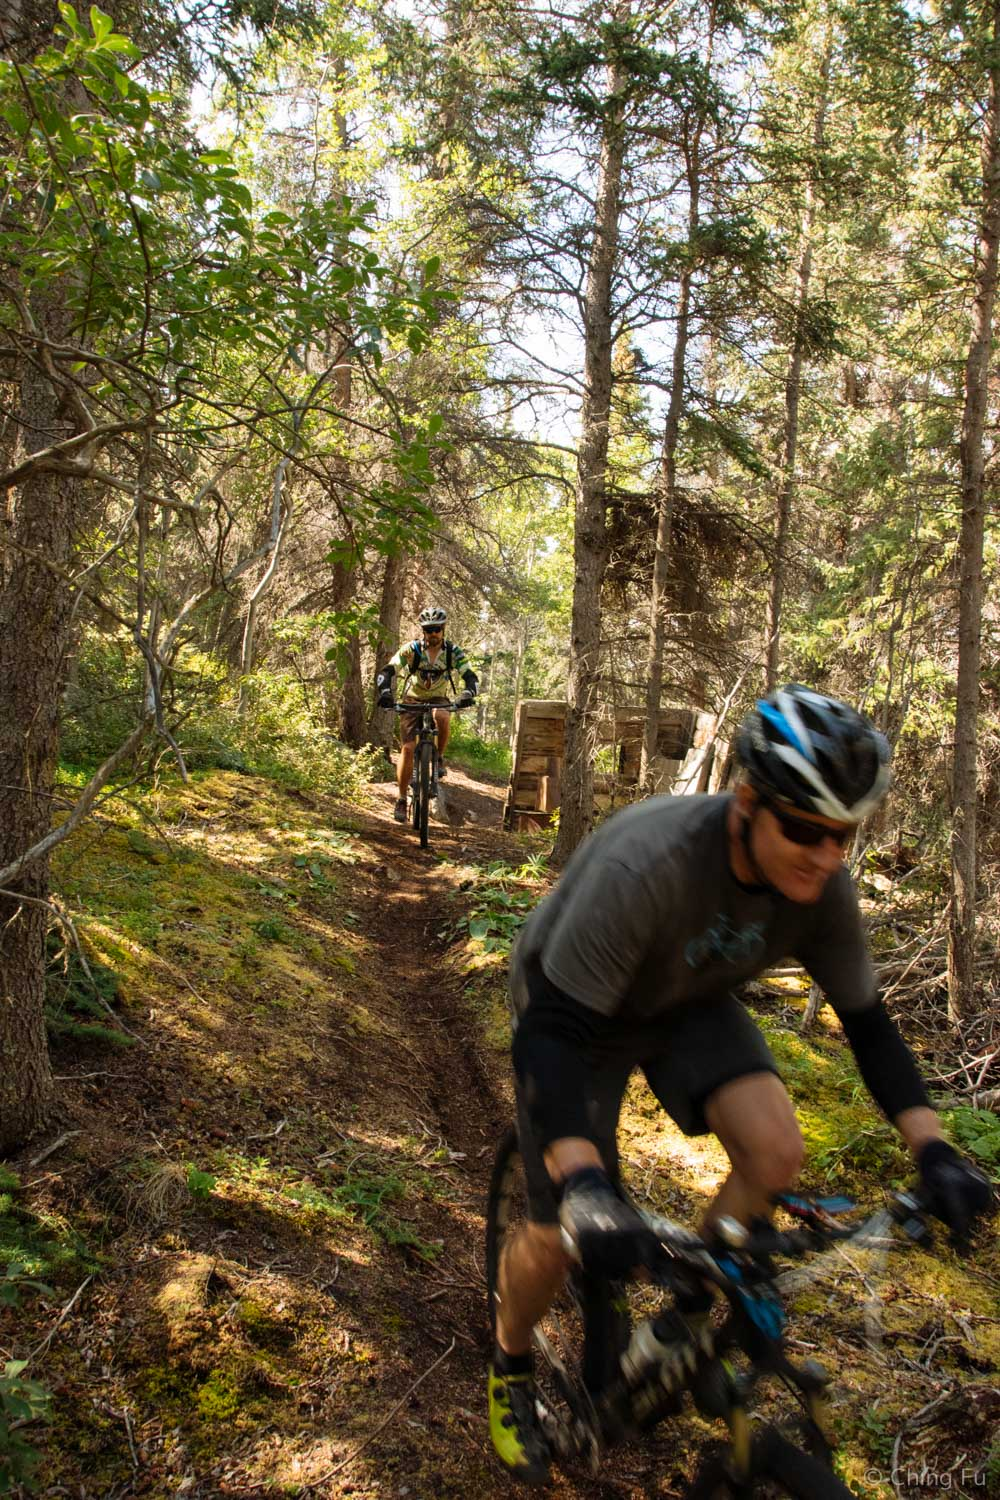 Riding past old wooden structures.